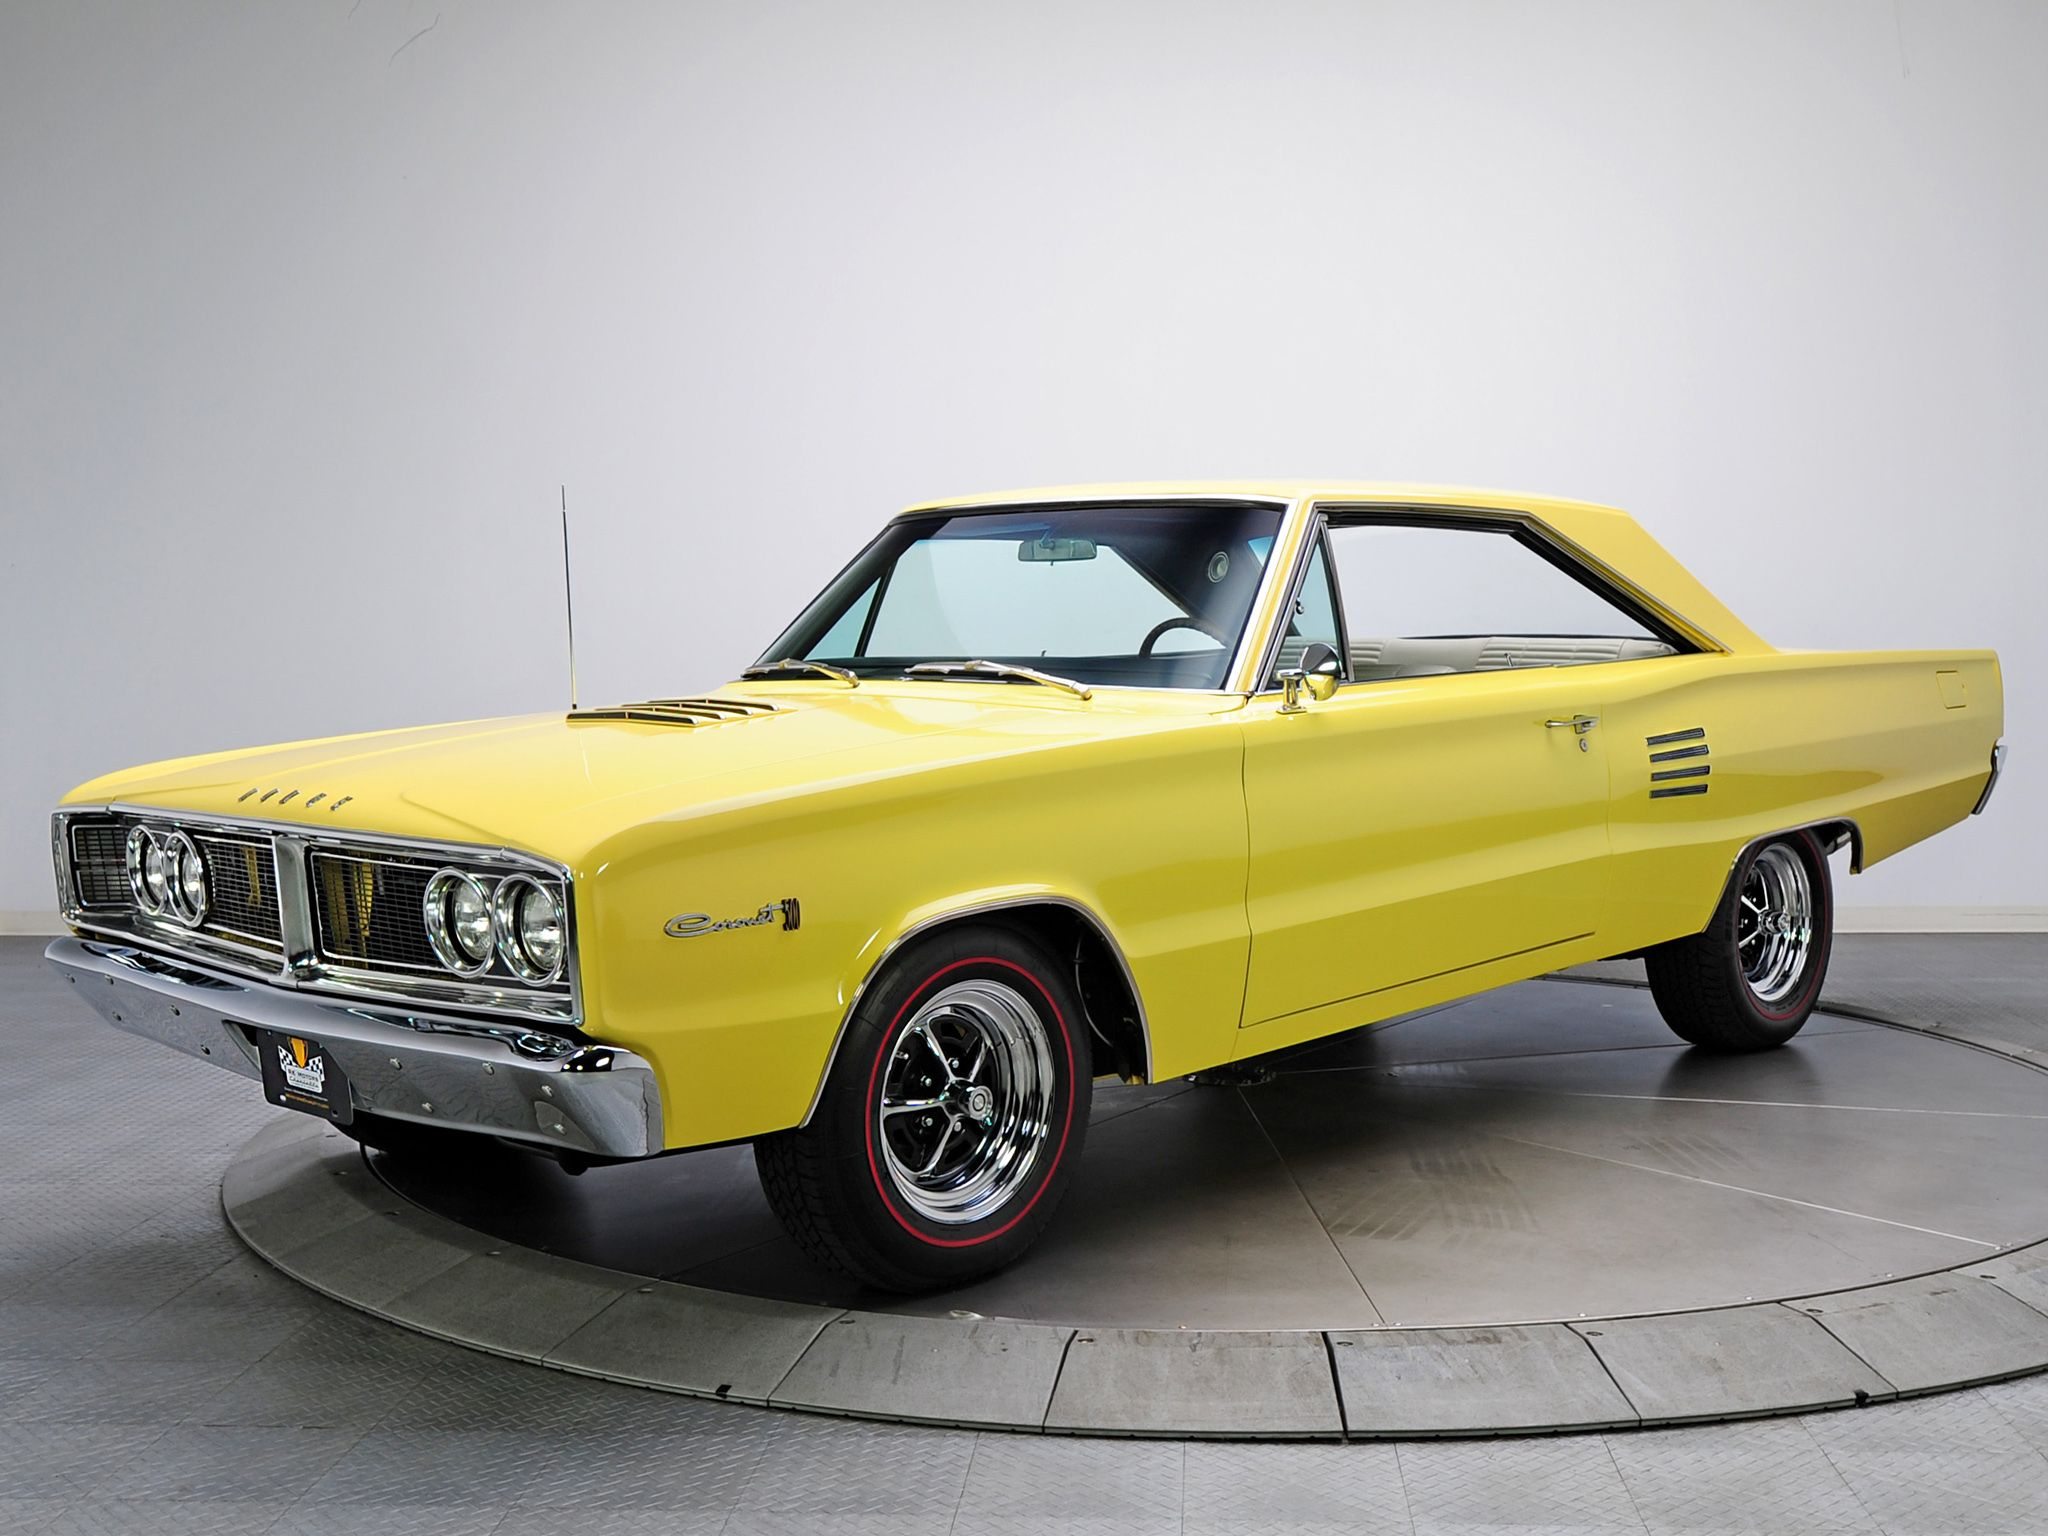 The 1967 dodge coronet my very first car i drove that poor girl into the ground